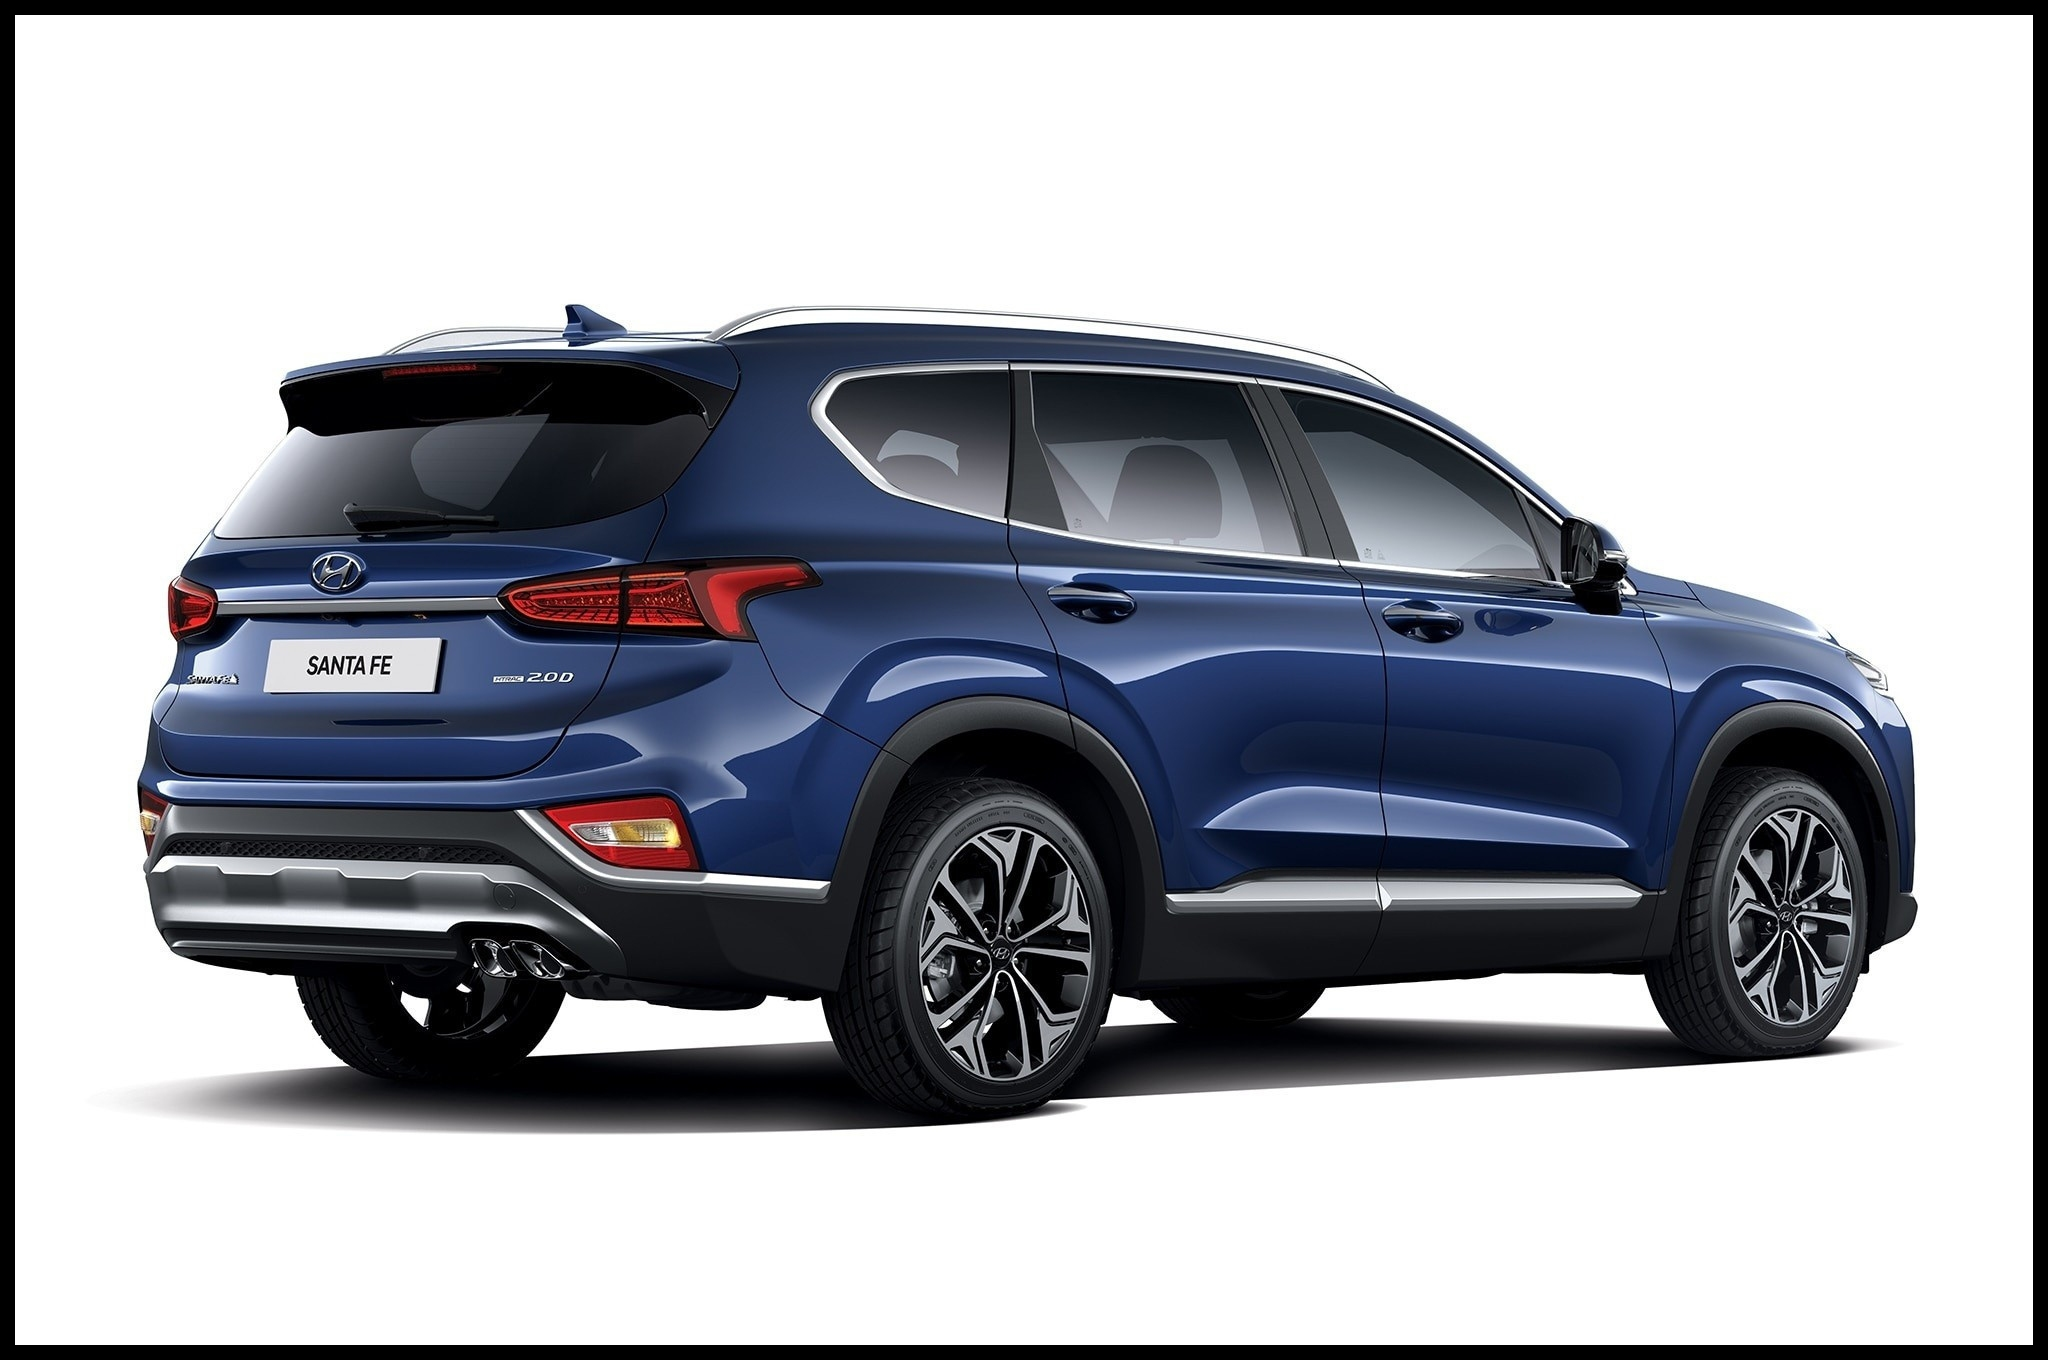 10 s of the 2019 Nissan Rogue Hybrid